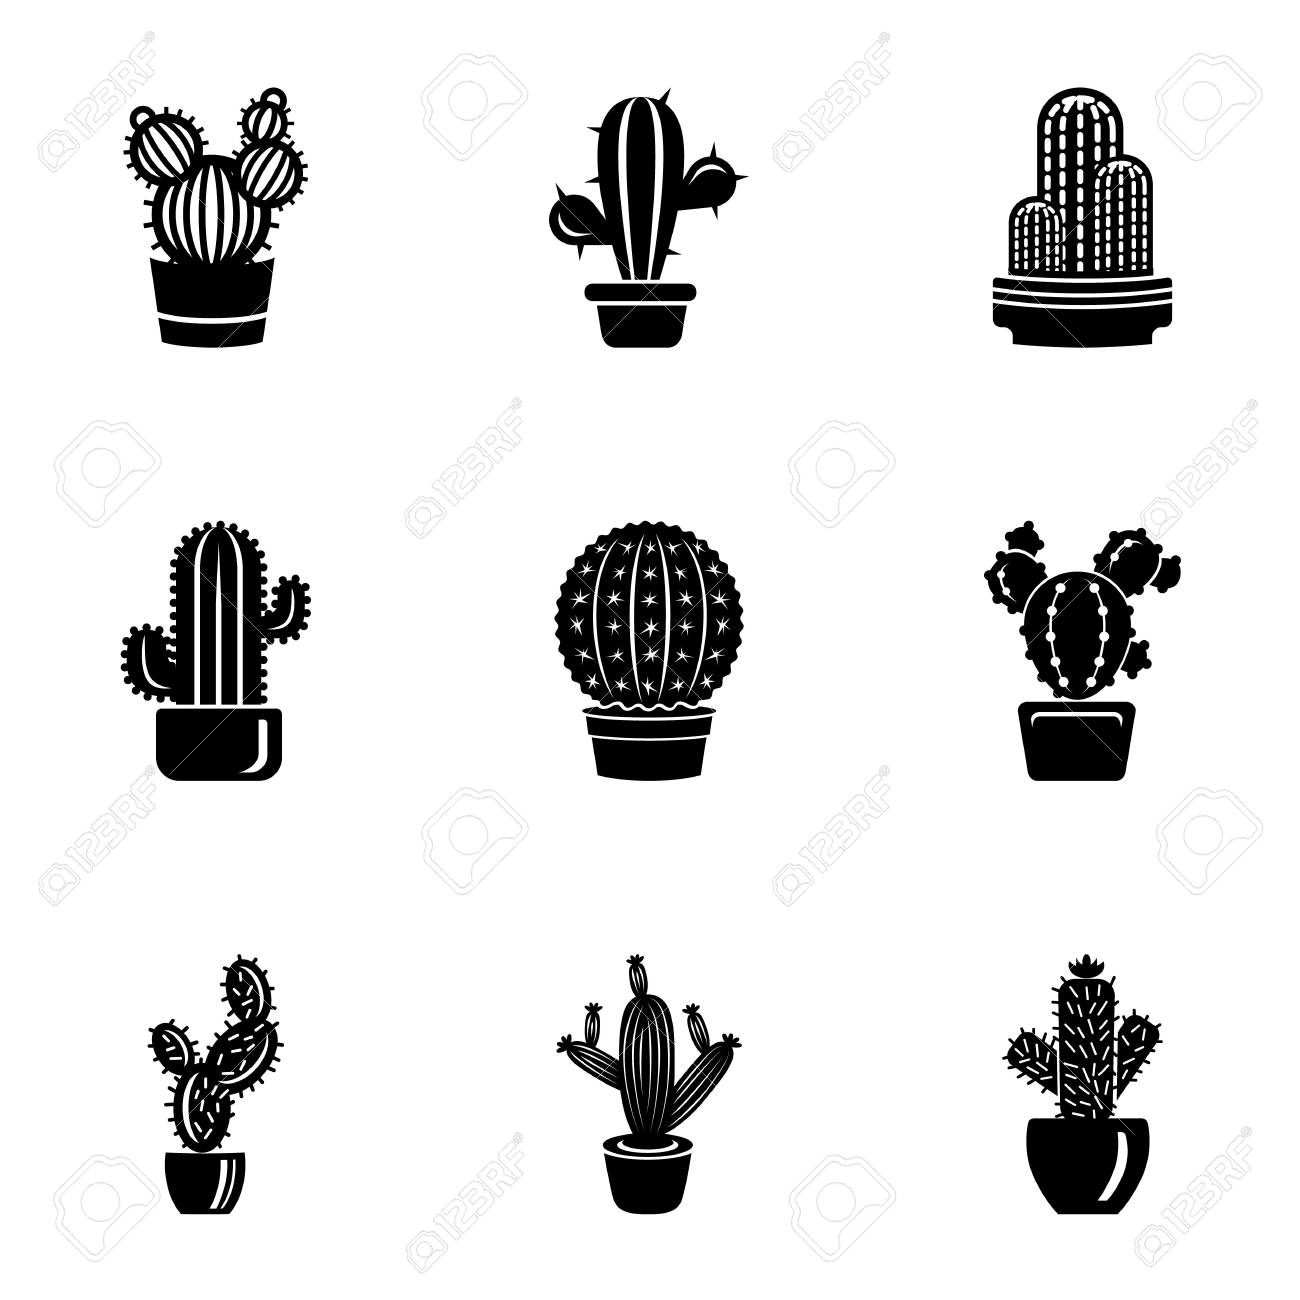 Peyote Icons Set Simple Set Of 9 Peyote Vector Icons For Web 1300x1300